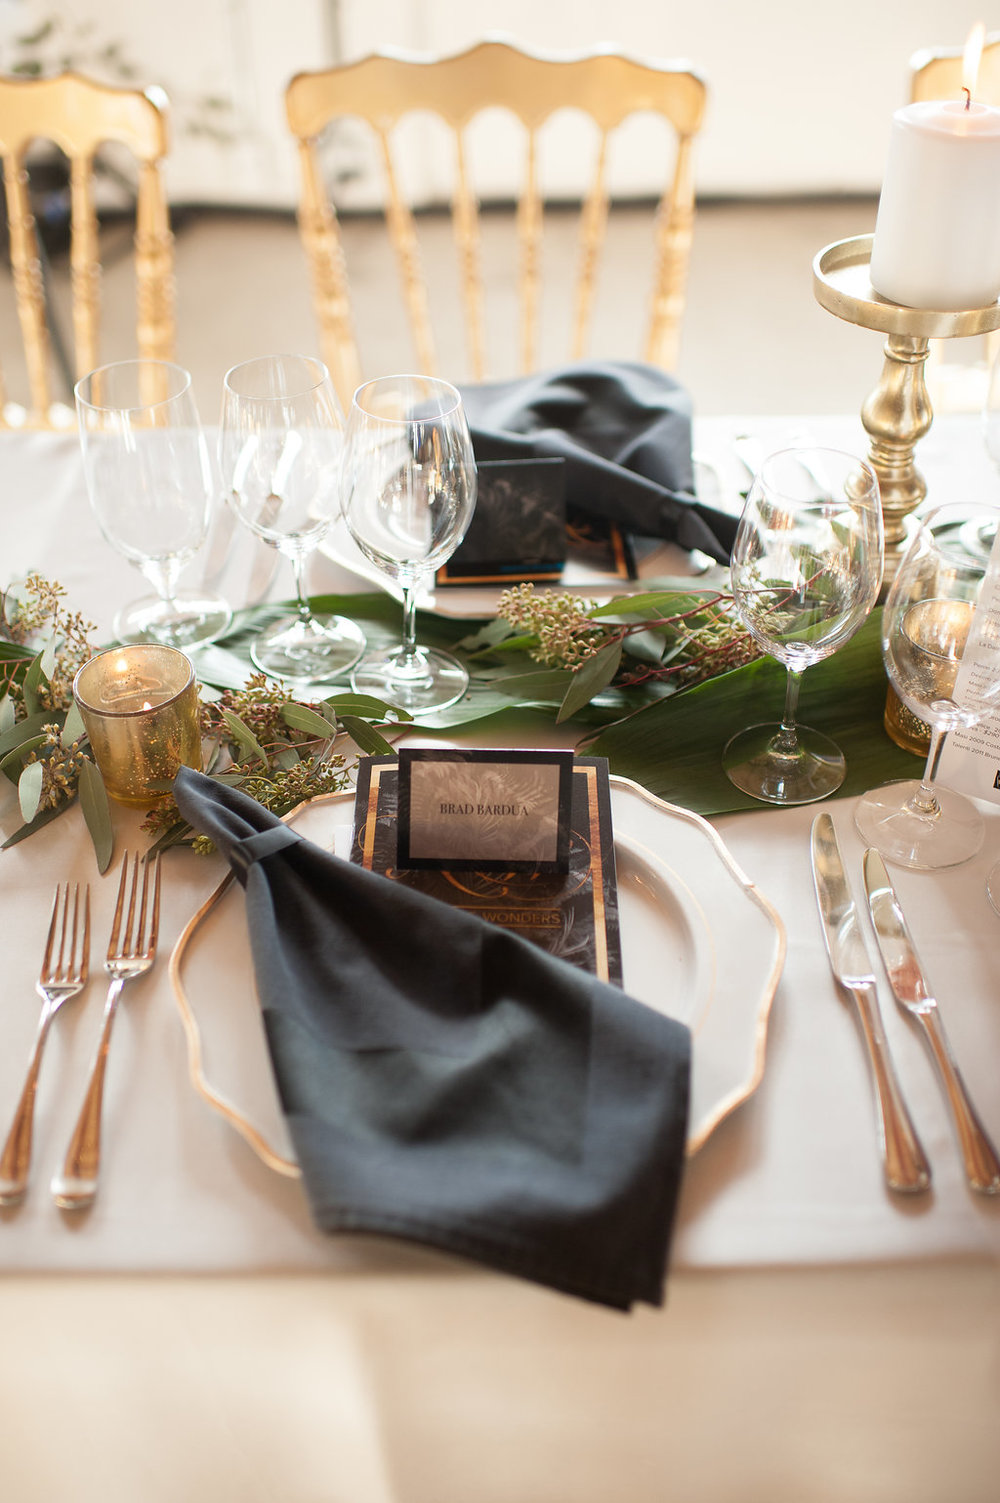 belluxe place setting.jpg